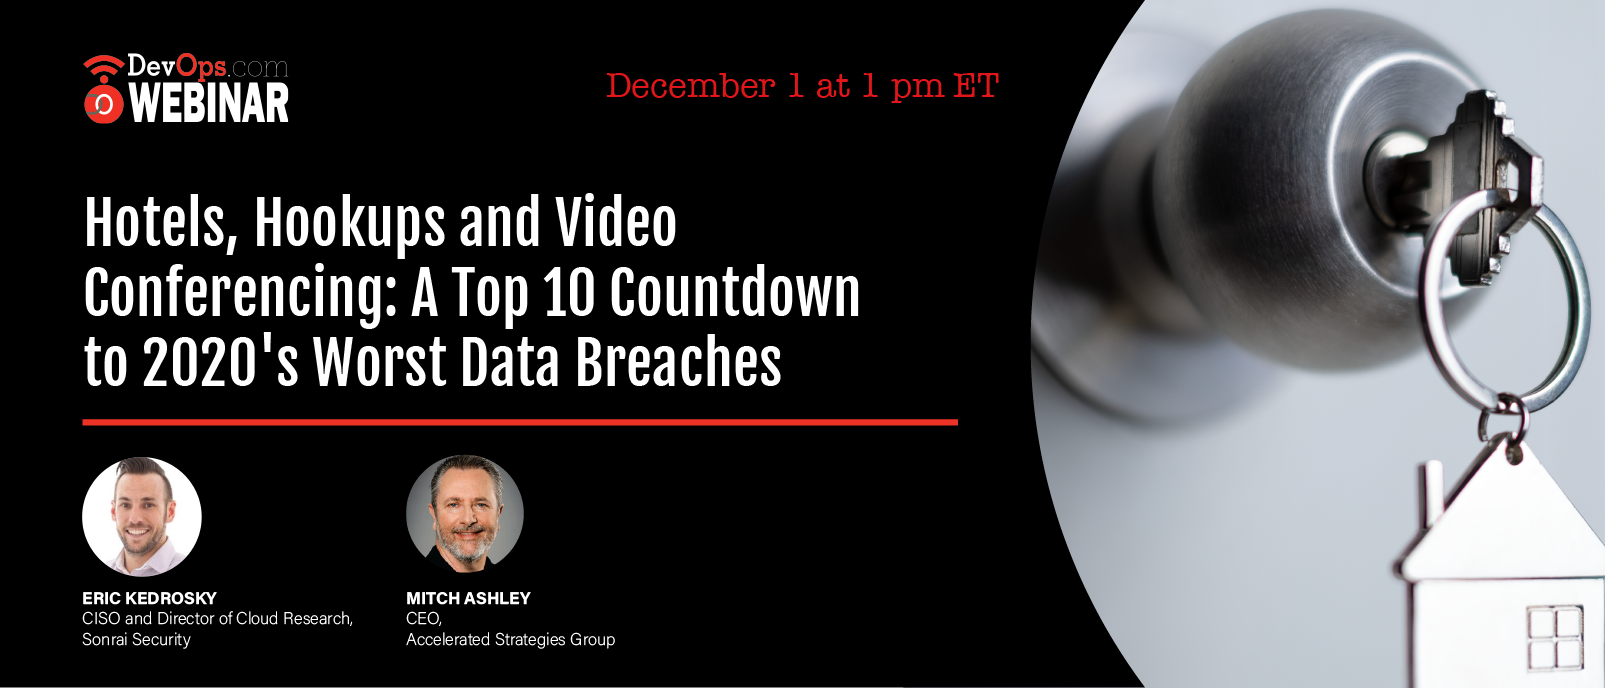 Hotels, Hookups and Video Conferencing: A Top 10 Countdown to 2020's Worst Data Breaches